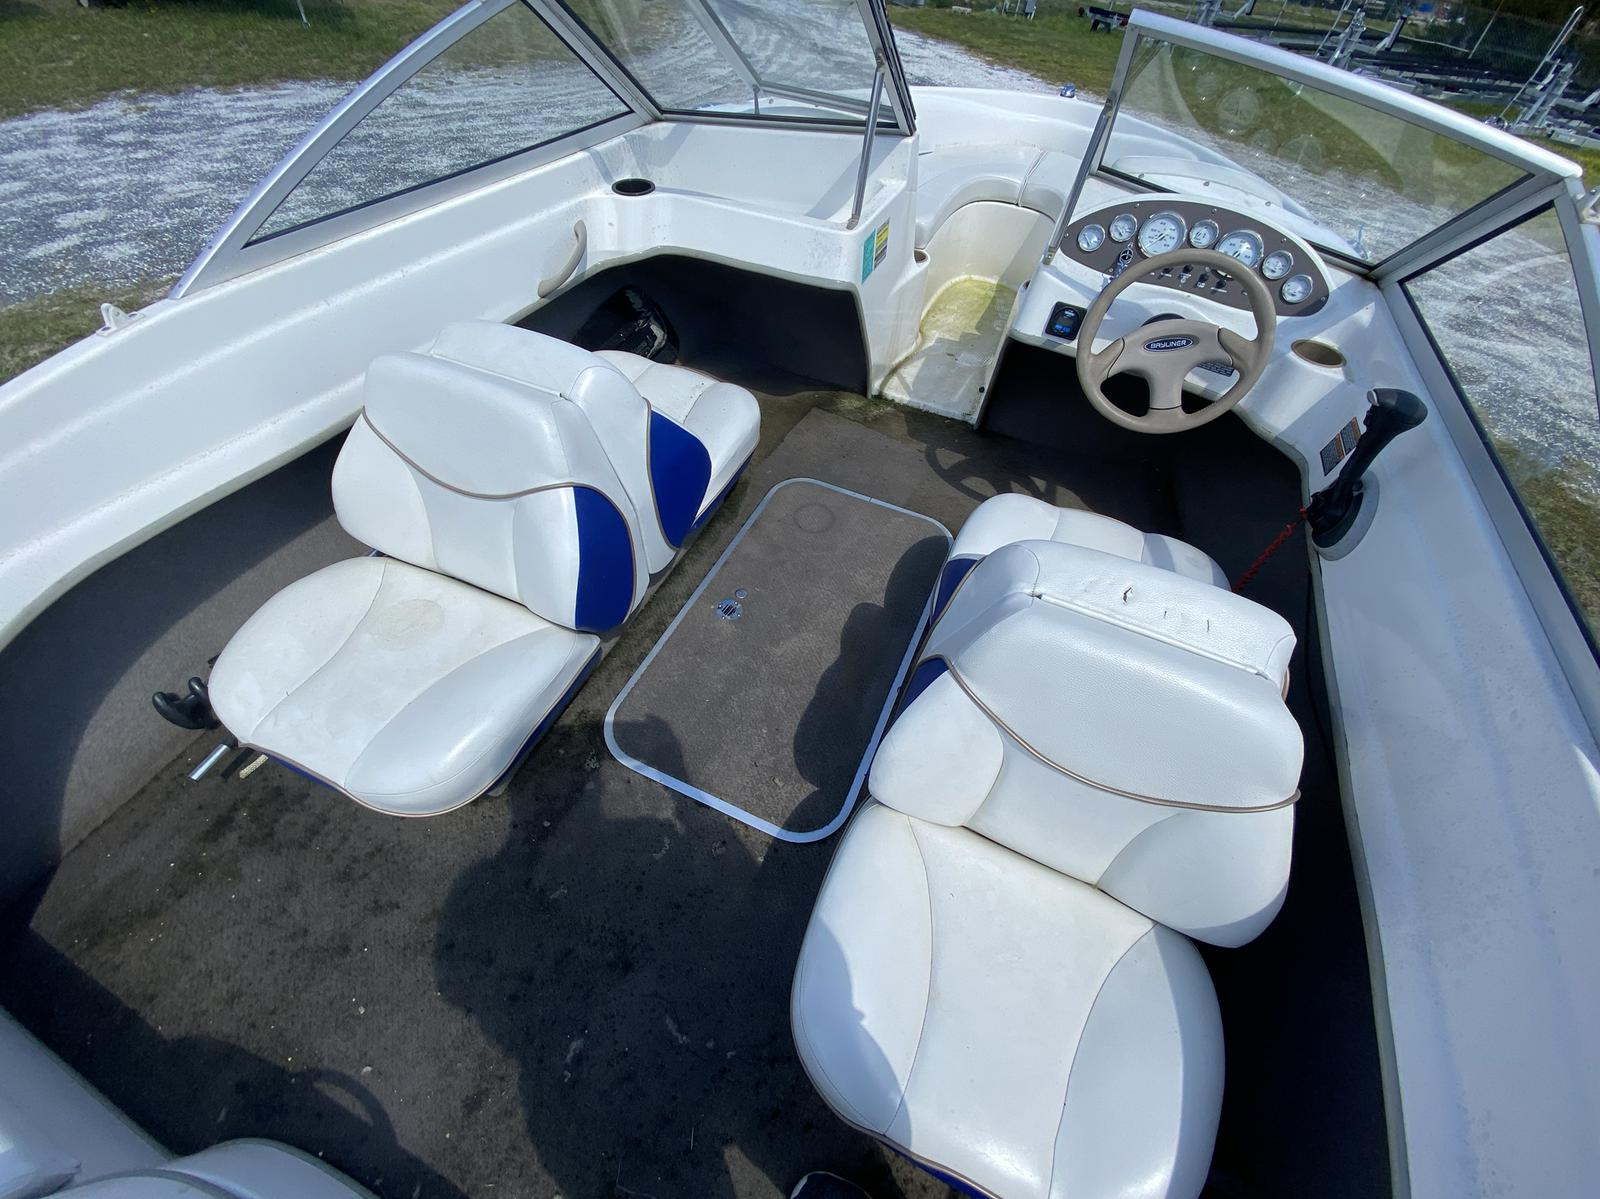 2003 Bayliner boat for sale, model of the boat is 175 Bowrider & Image # 4 of 10